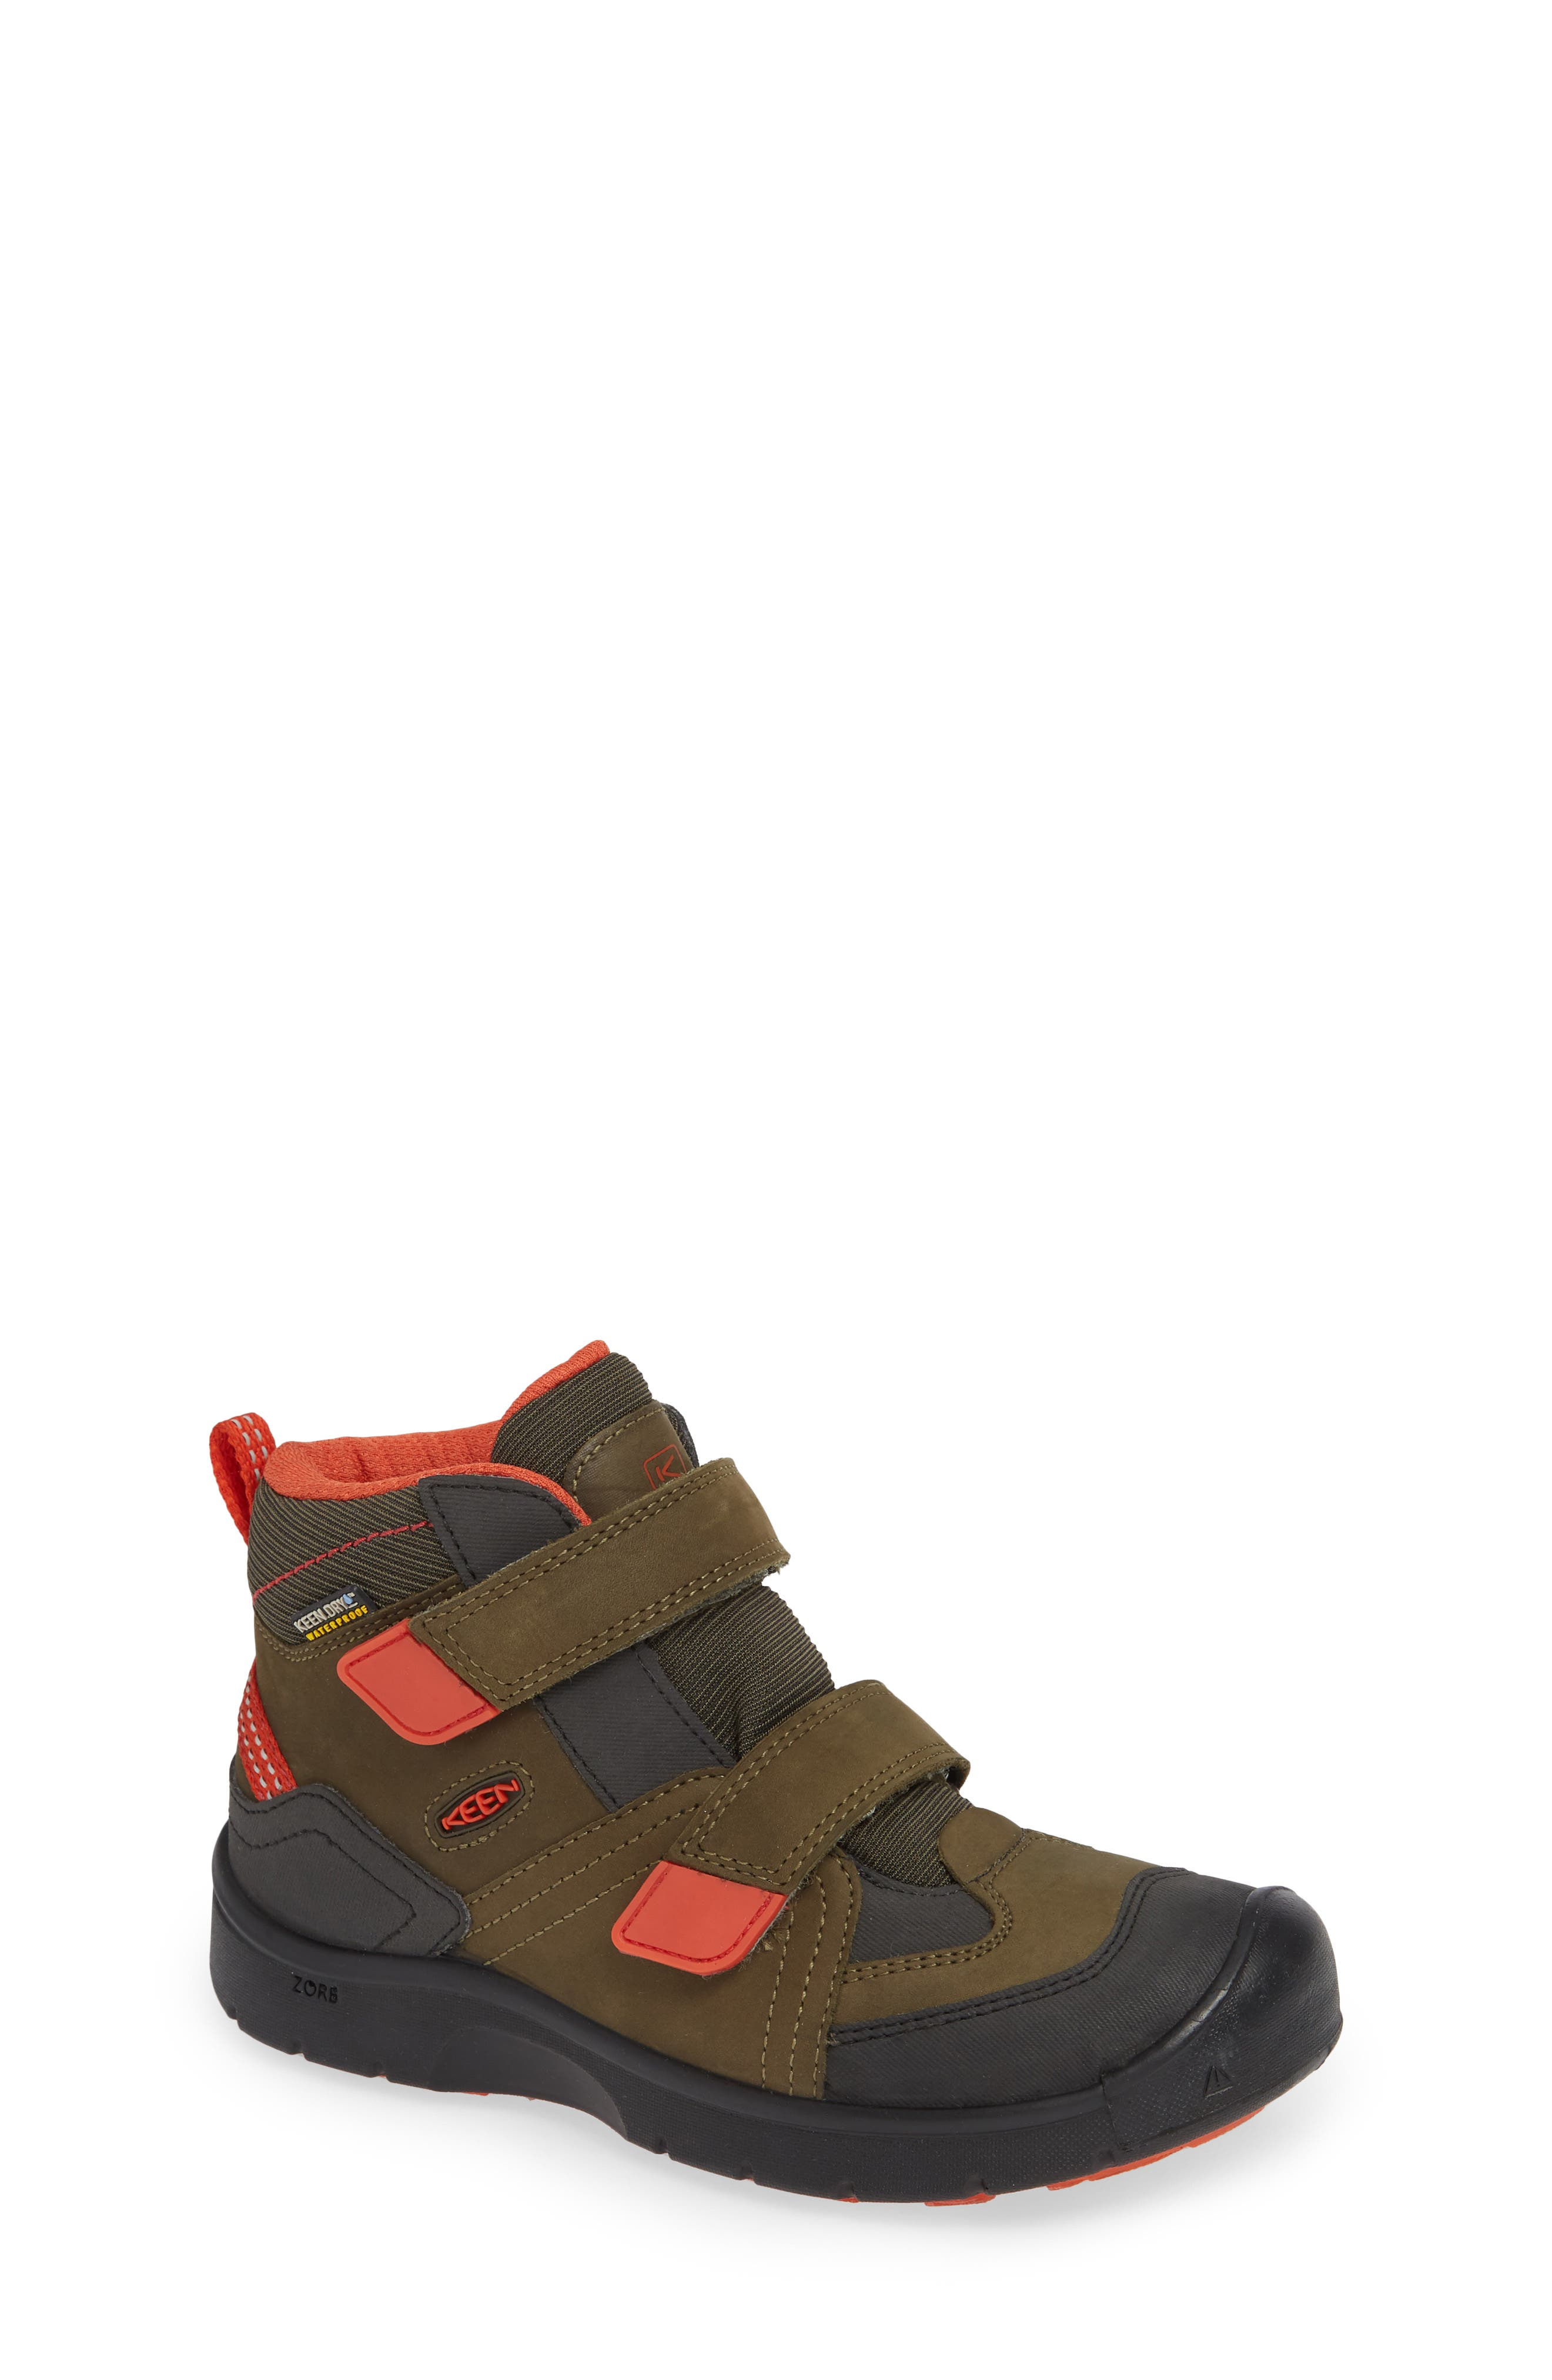 Hikeport Strap Waterproof Mid Boot,                         Main,                         color, MARTINI OLIVE/ PUMPKIN